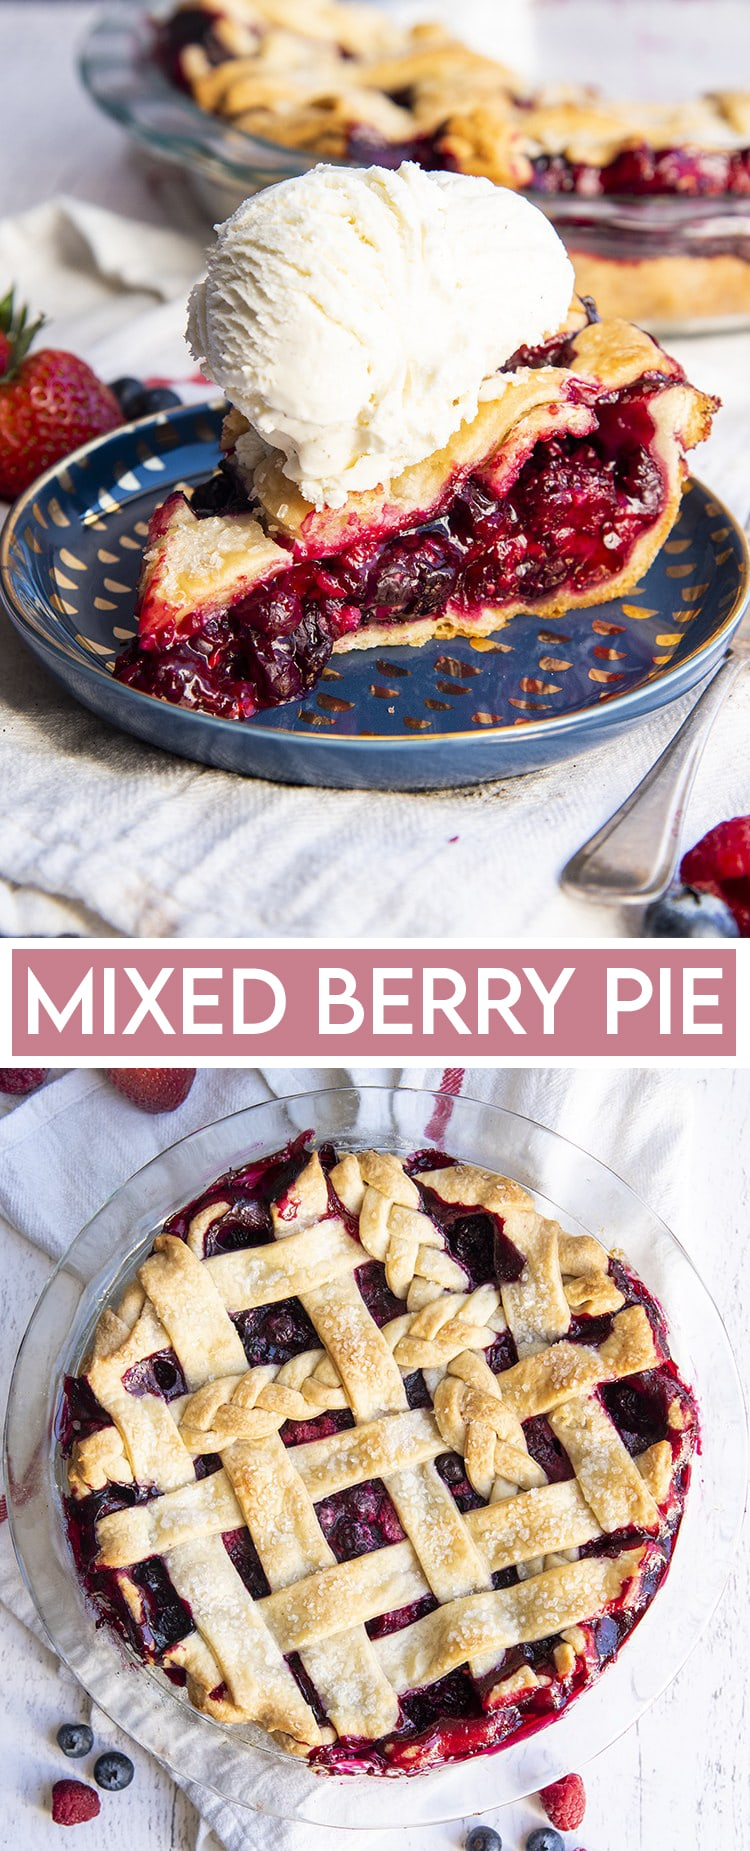 A slice of mixed berry pie on a blue plate showing all the juicy red berries in the middle with a lattice pie crust on top, with a scoop of vanilla ice cream on top. Followed by text saying Mixed Berry Pie. Then a second photo of the whole pie from above, showing the lattice crossing of the pie crust.